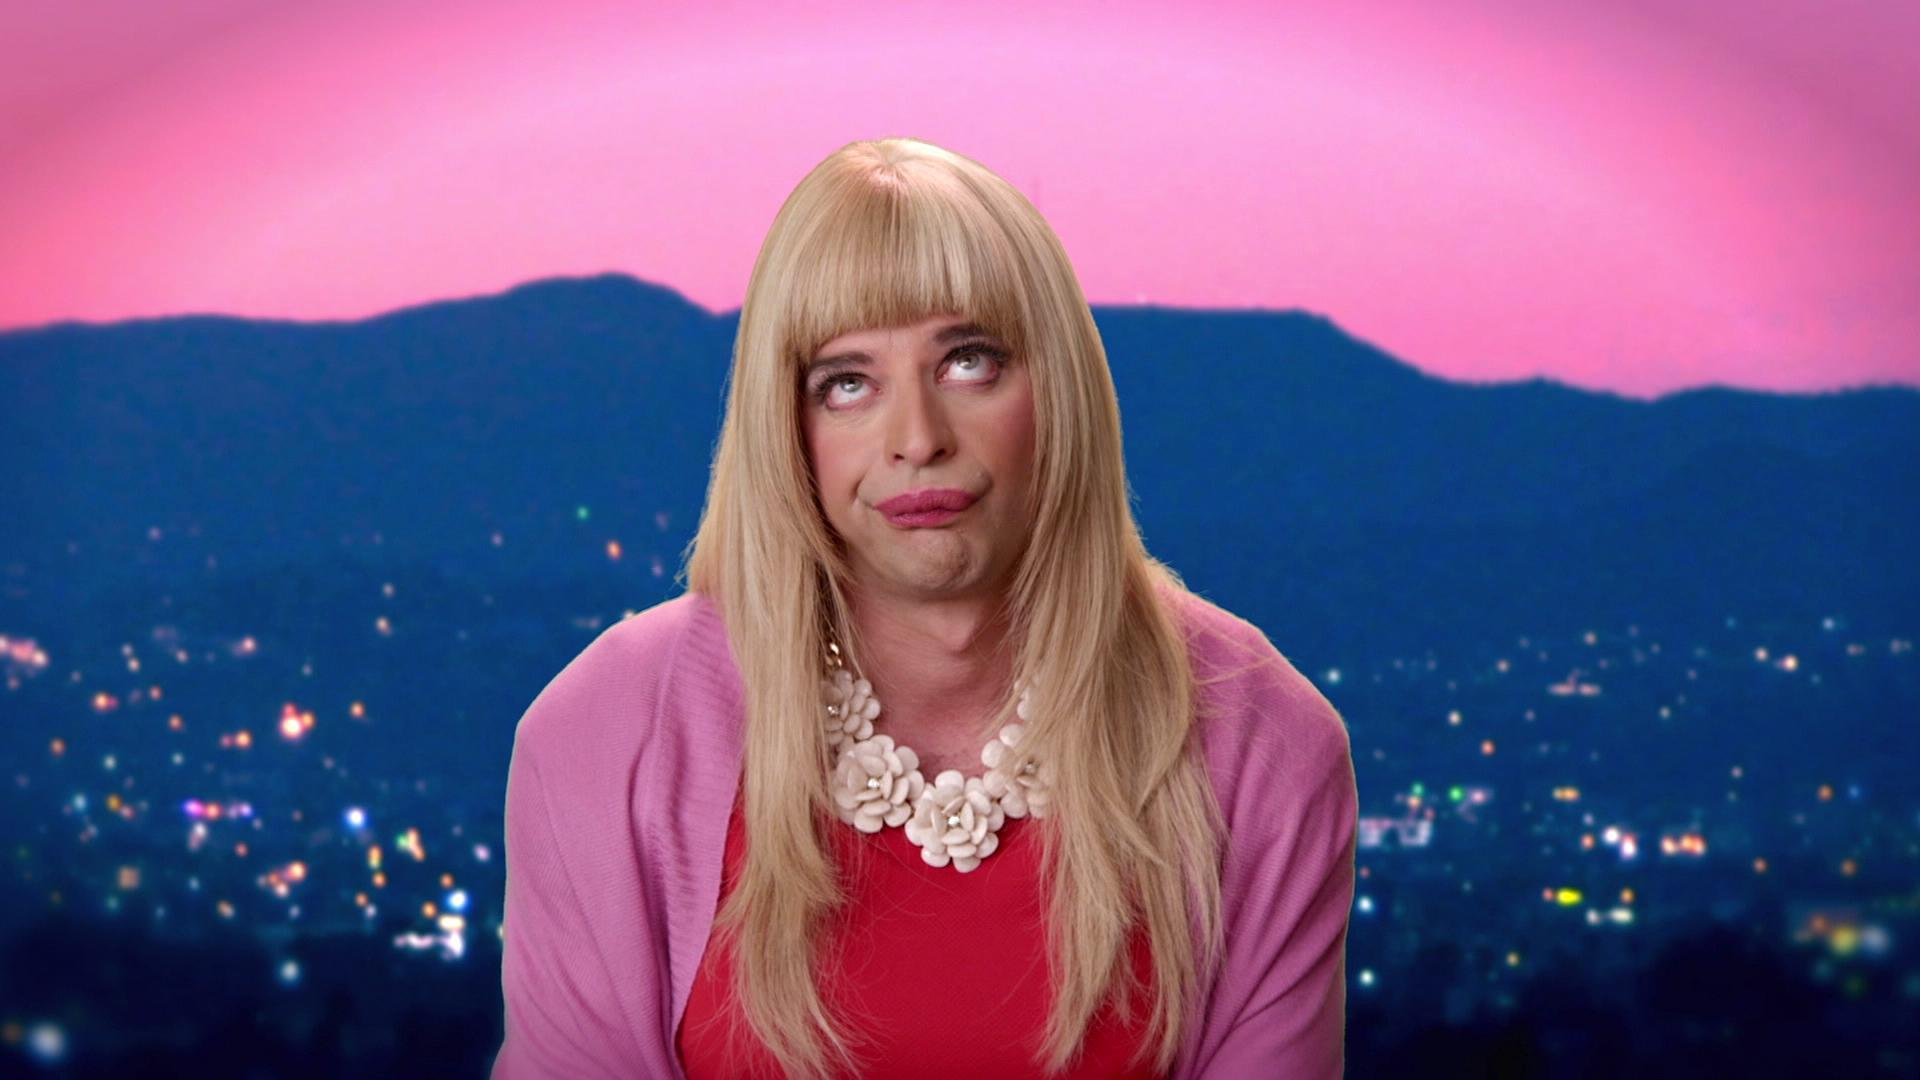 Kroll Show: This Has Been Such an Amazing Experience